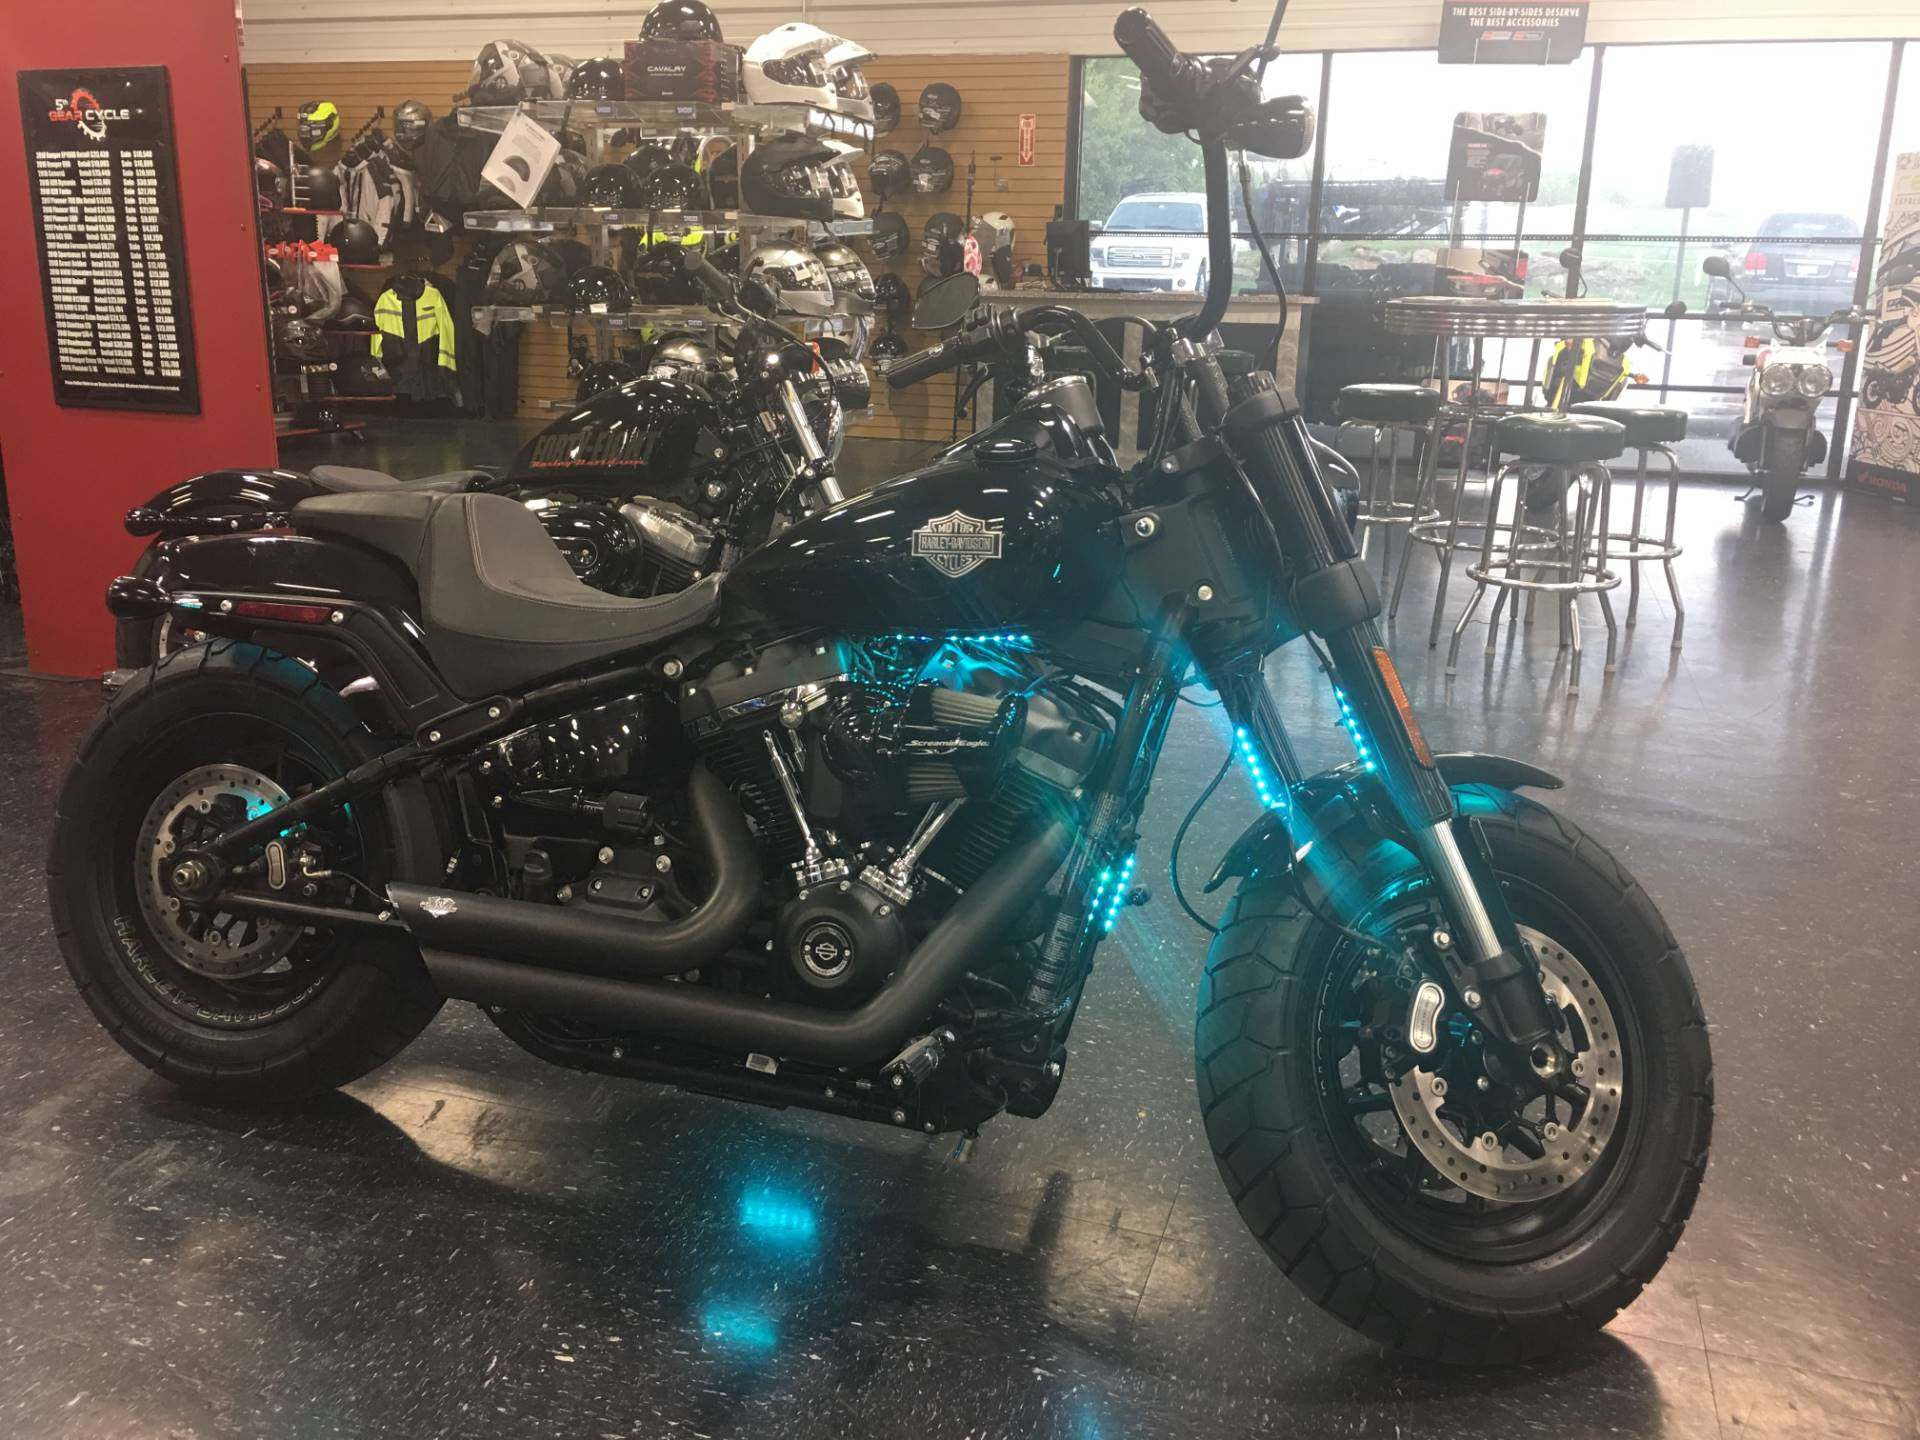 Used 2018 Harley-Davidson Fat Bob® 114 Motorcycles in Broken Arrow, OK Outside the Tulsa Metro ...